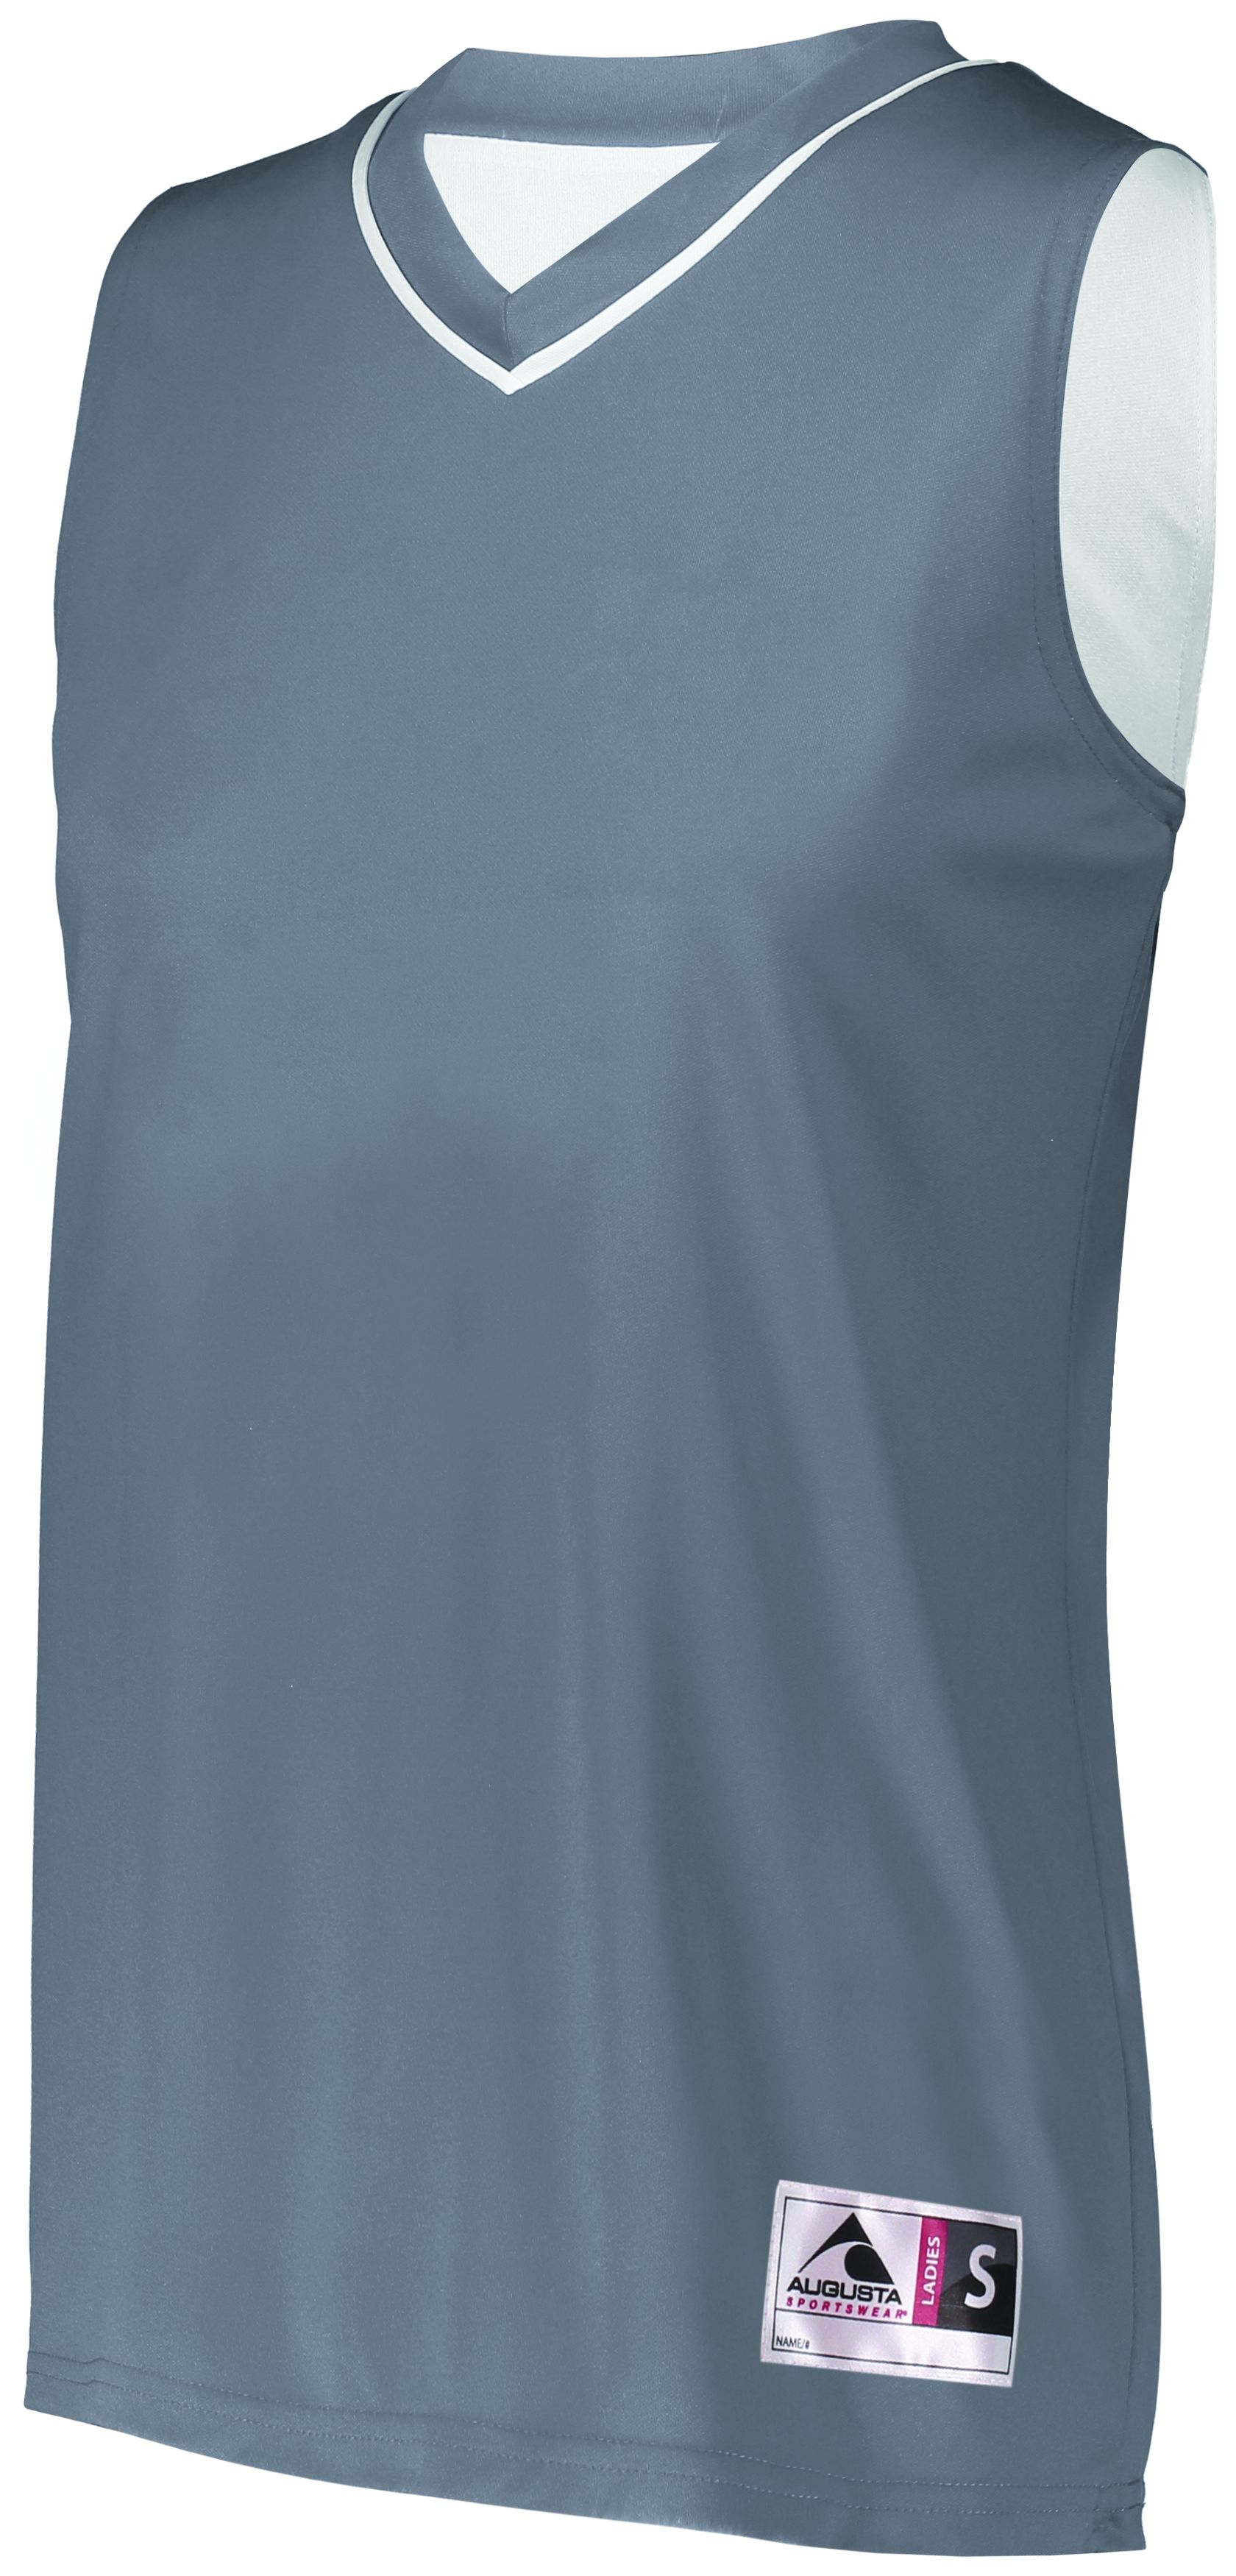 Ladies Reversible Two-Color Jersey - GRAPHITE/WHITE